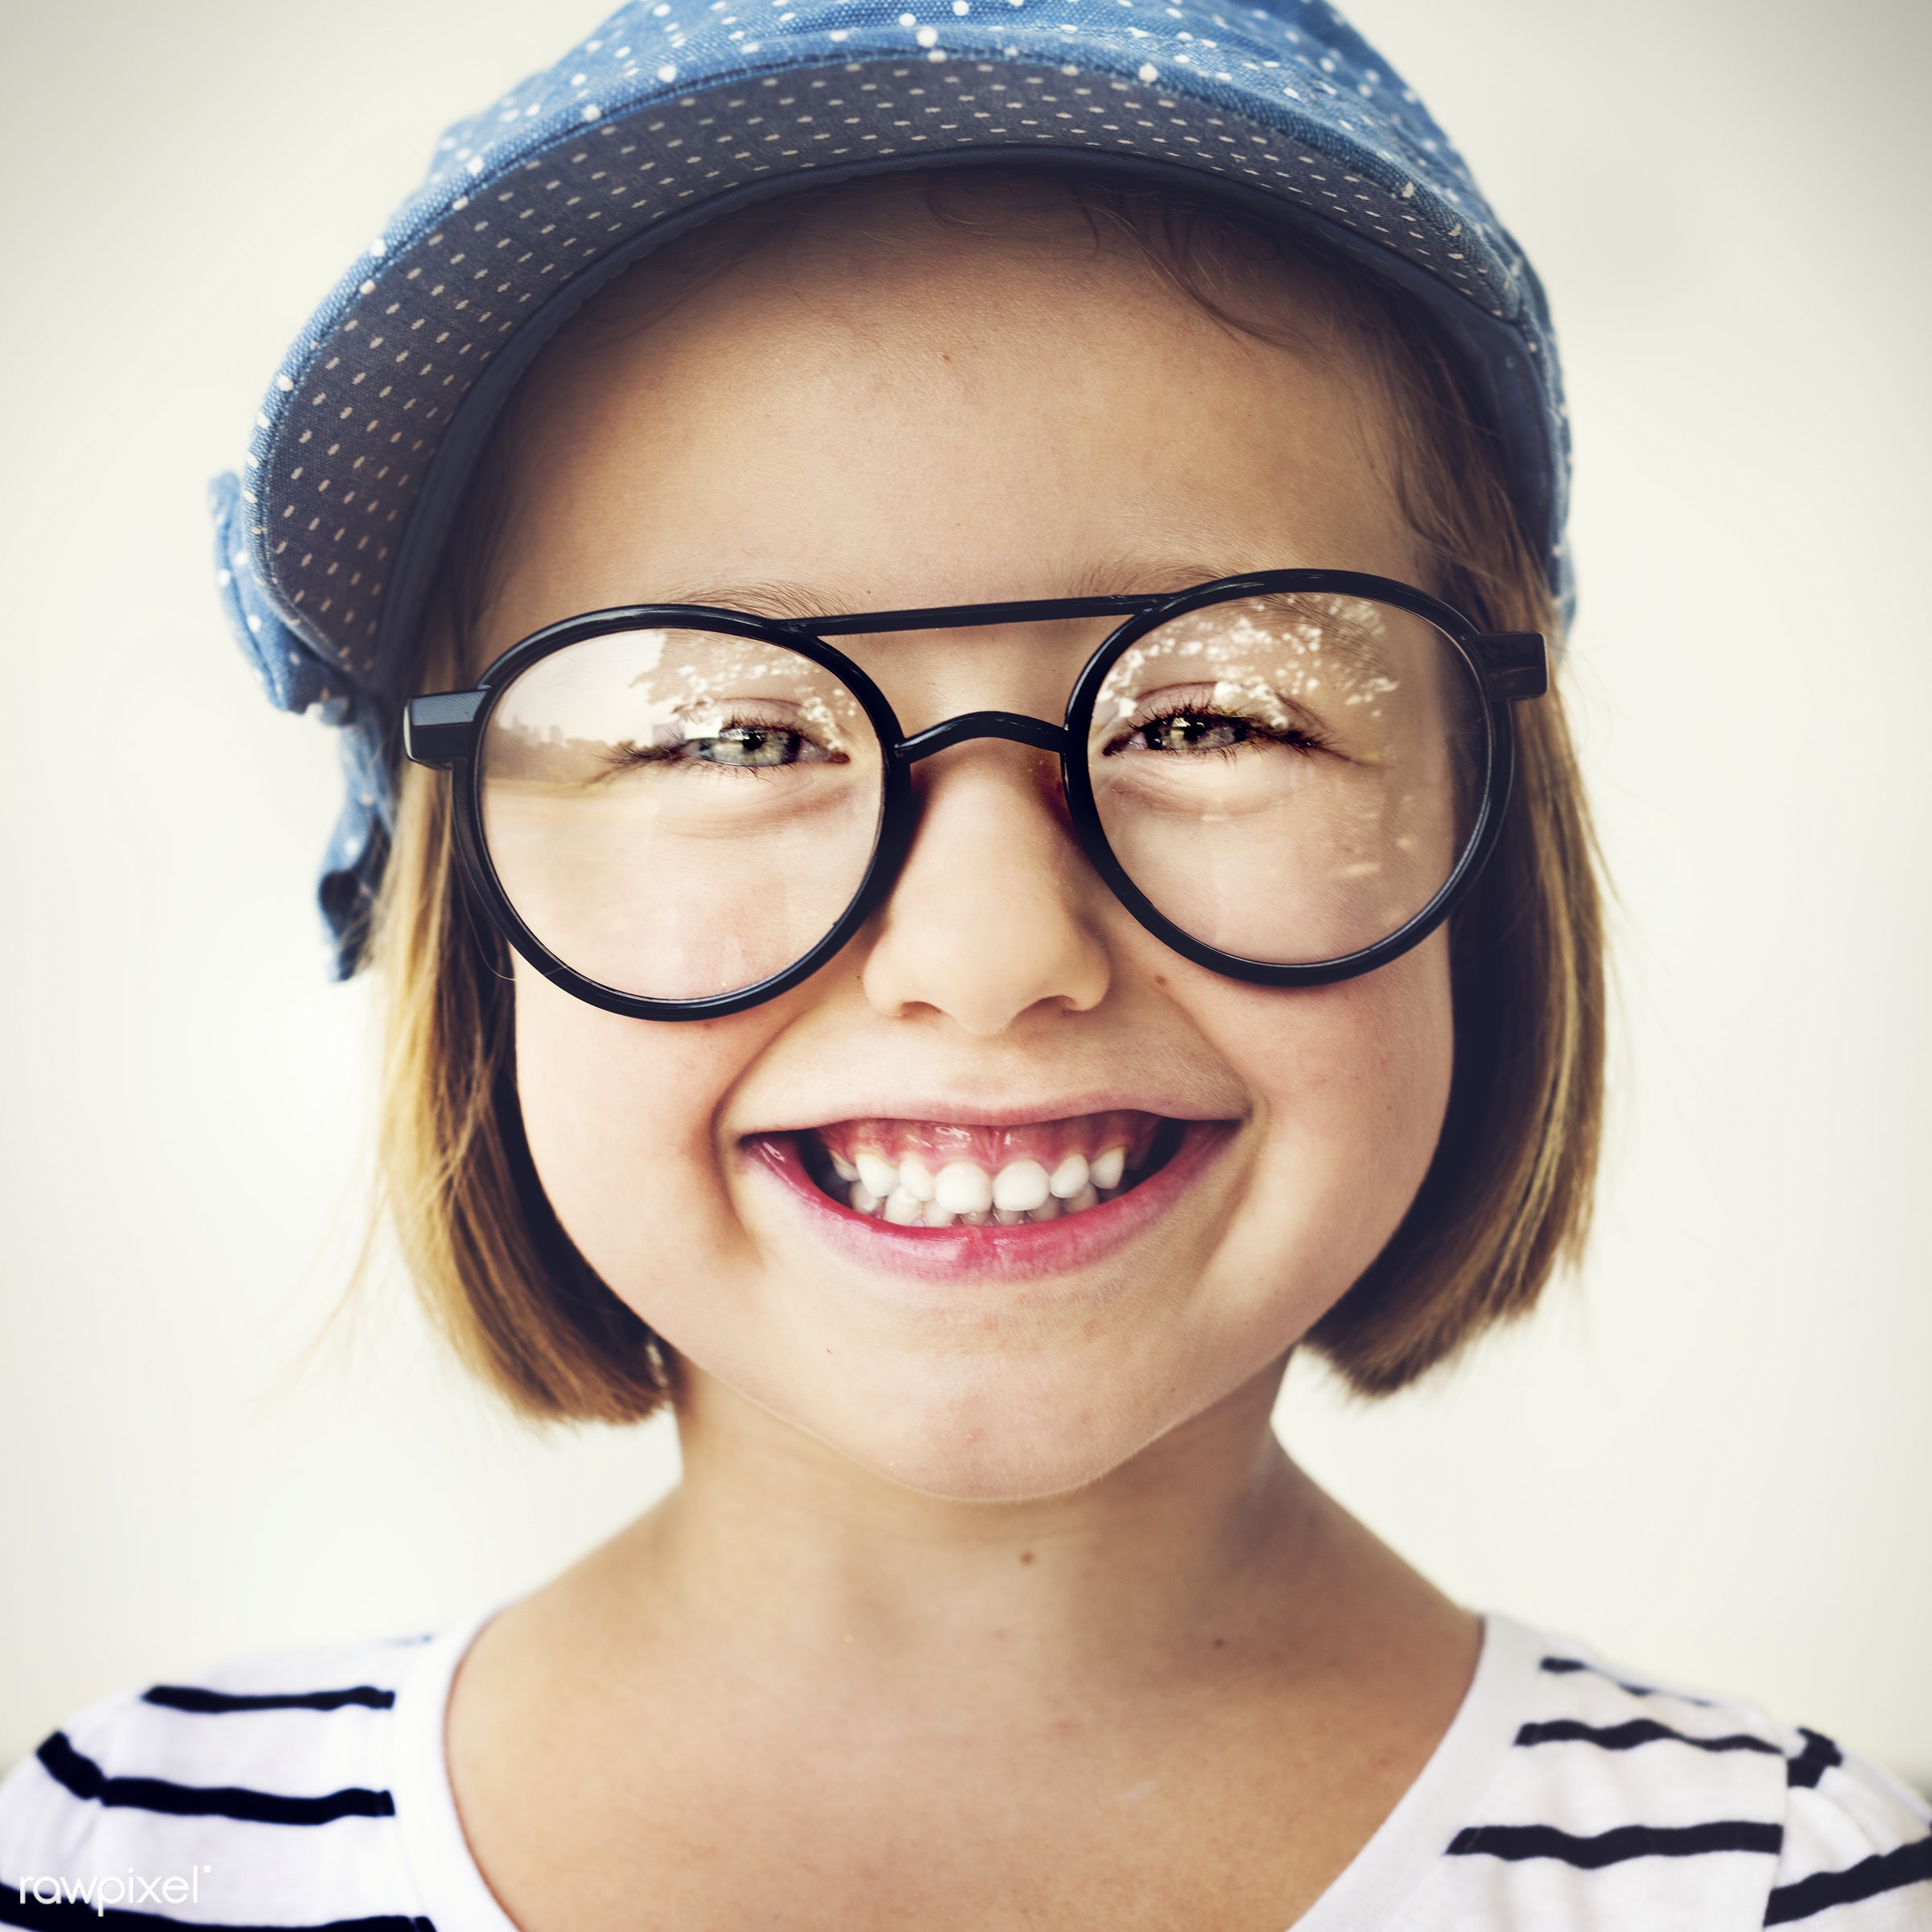 Cute little girl with glasses - happy, child, friendship, fun, smiling, cute, happiness, activities, adorable, beautiful,...